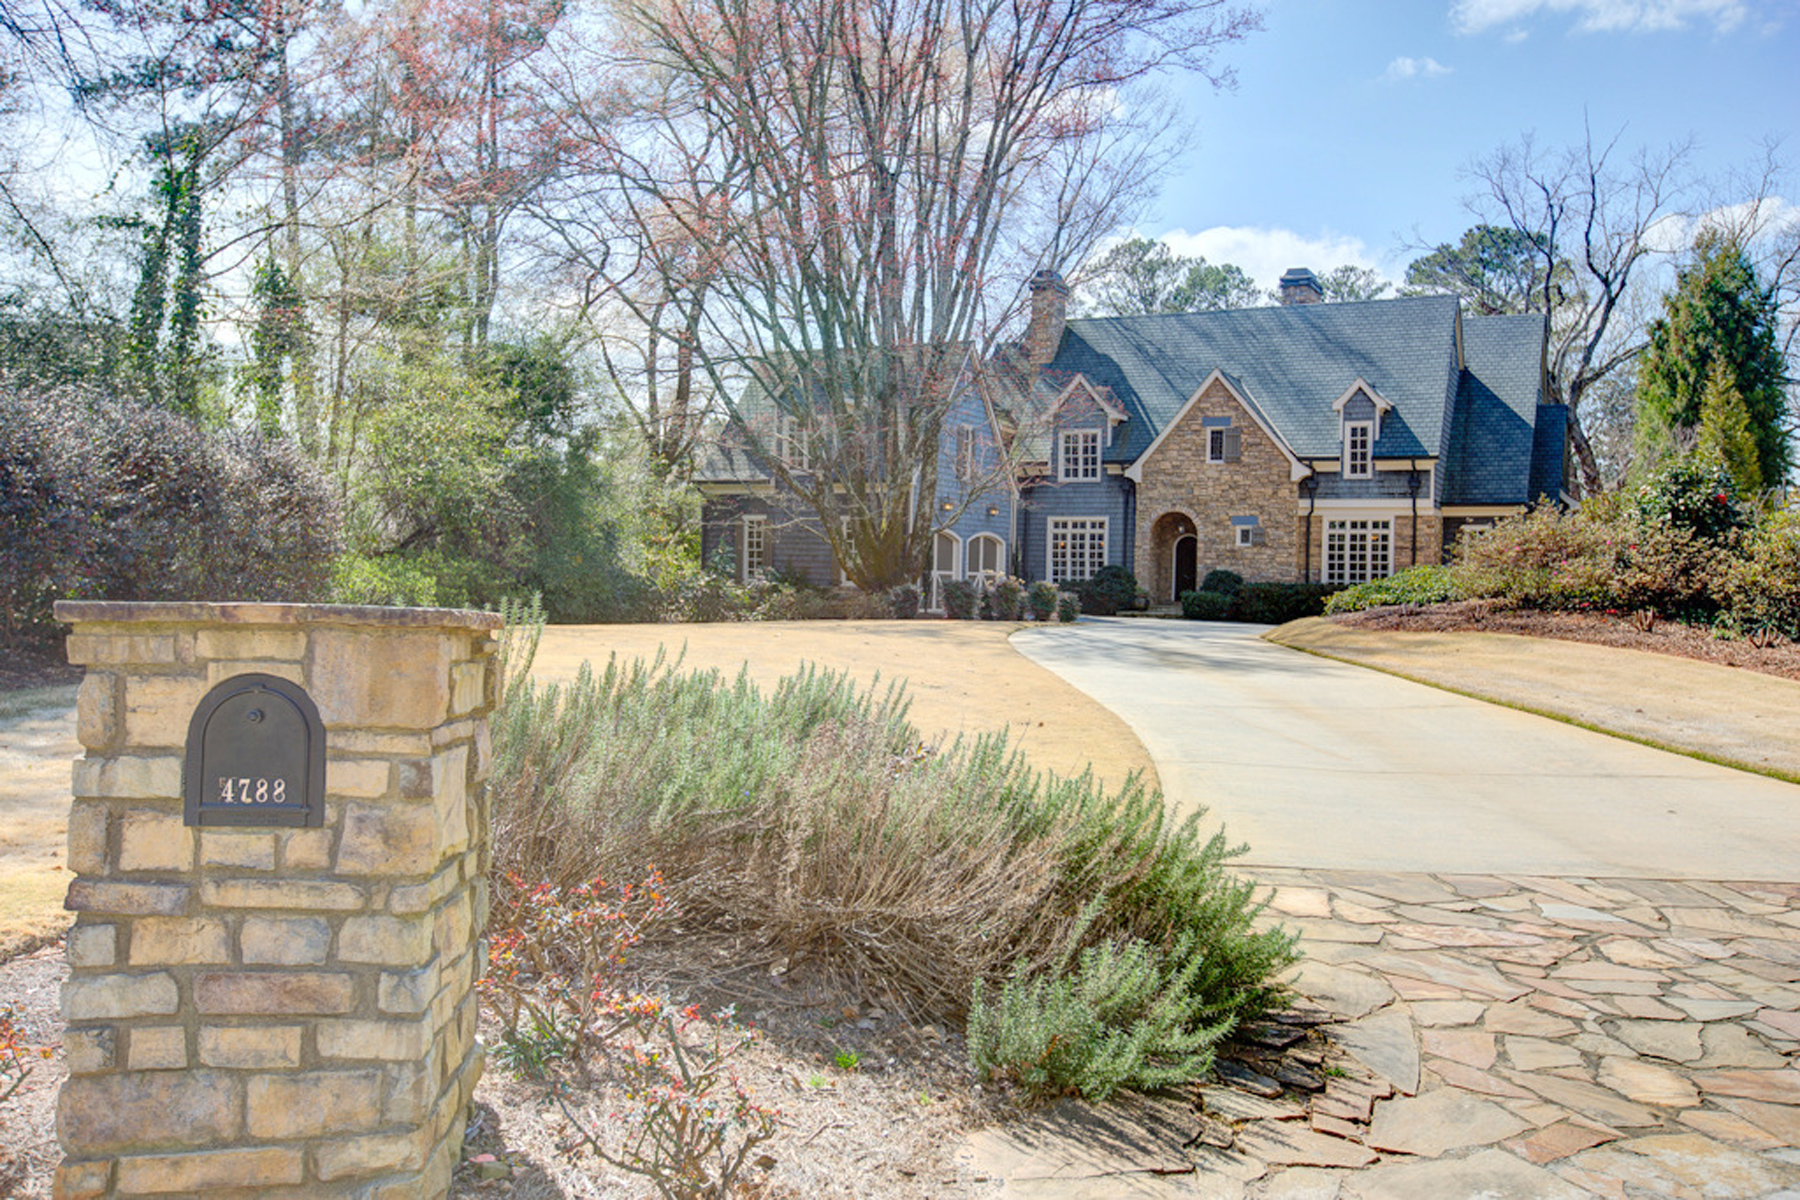 단독 가정 주택 용 매매 에 Absolutely Stunning Custom Built Home In Chastain Park Area 4788 Dudley Lane Atlanta, 조지아 30327 미국